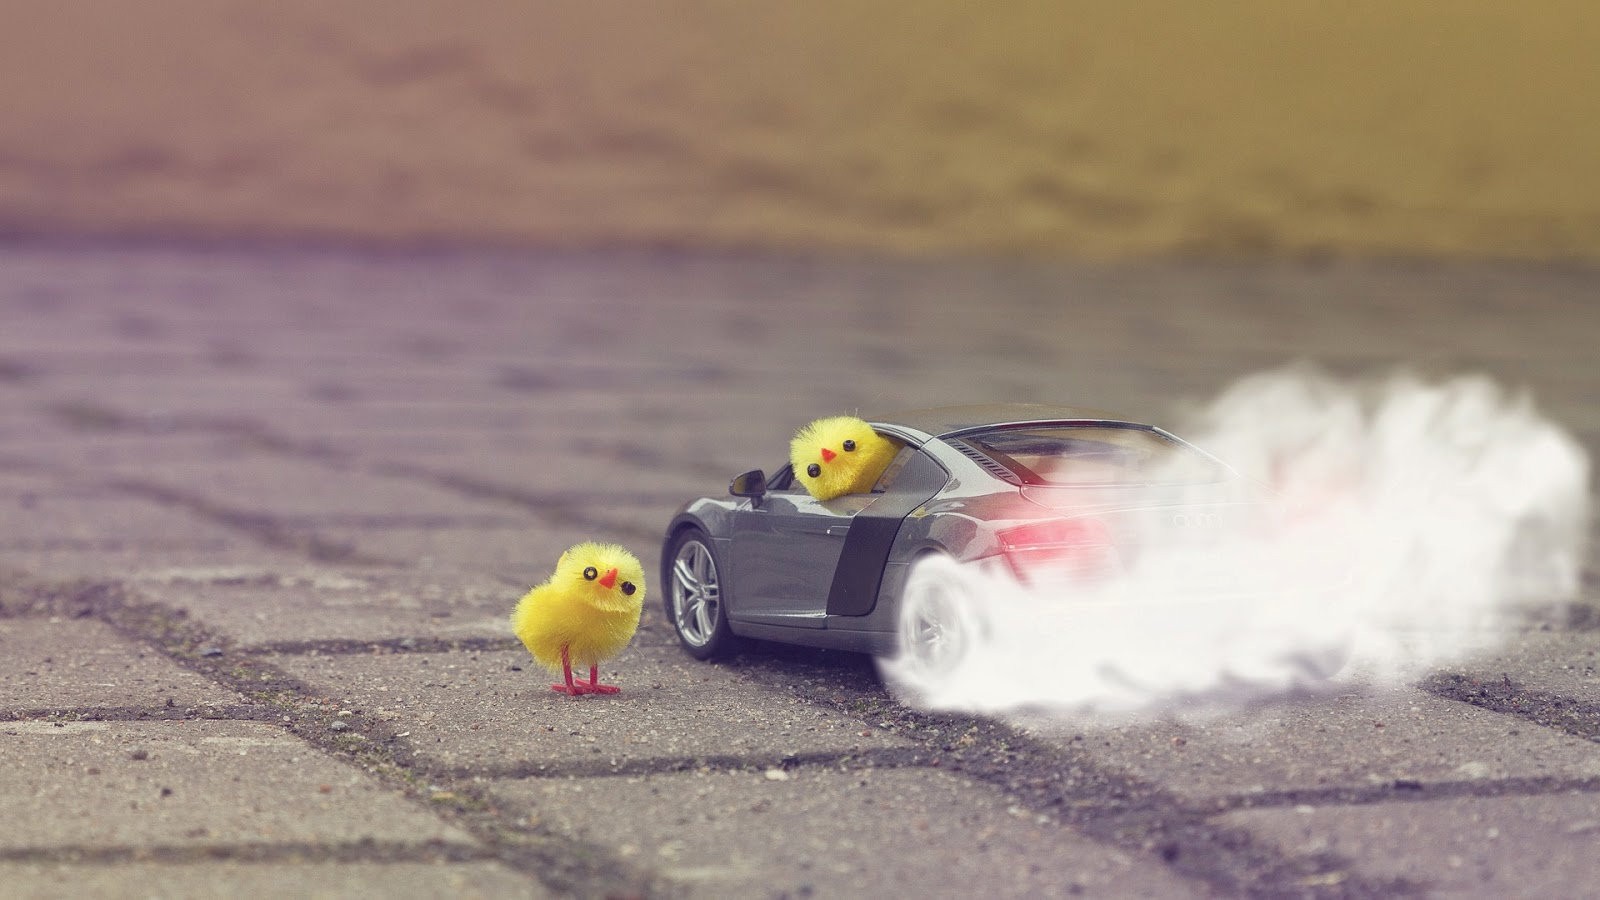 chicken-having-trouble-with-sports-car-funny-picture-for-kids.jpg